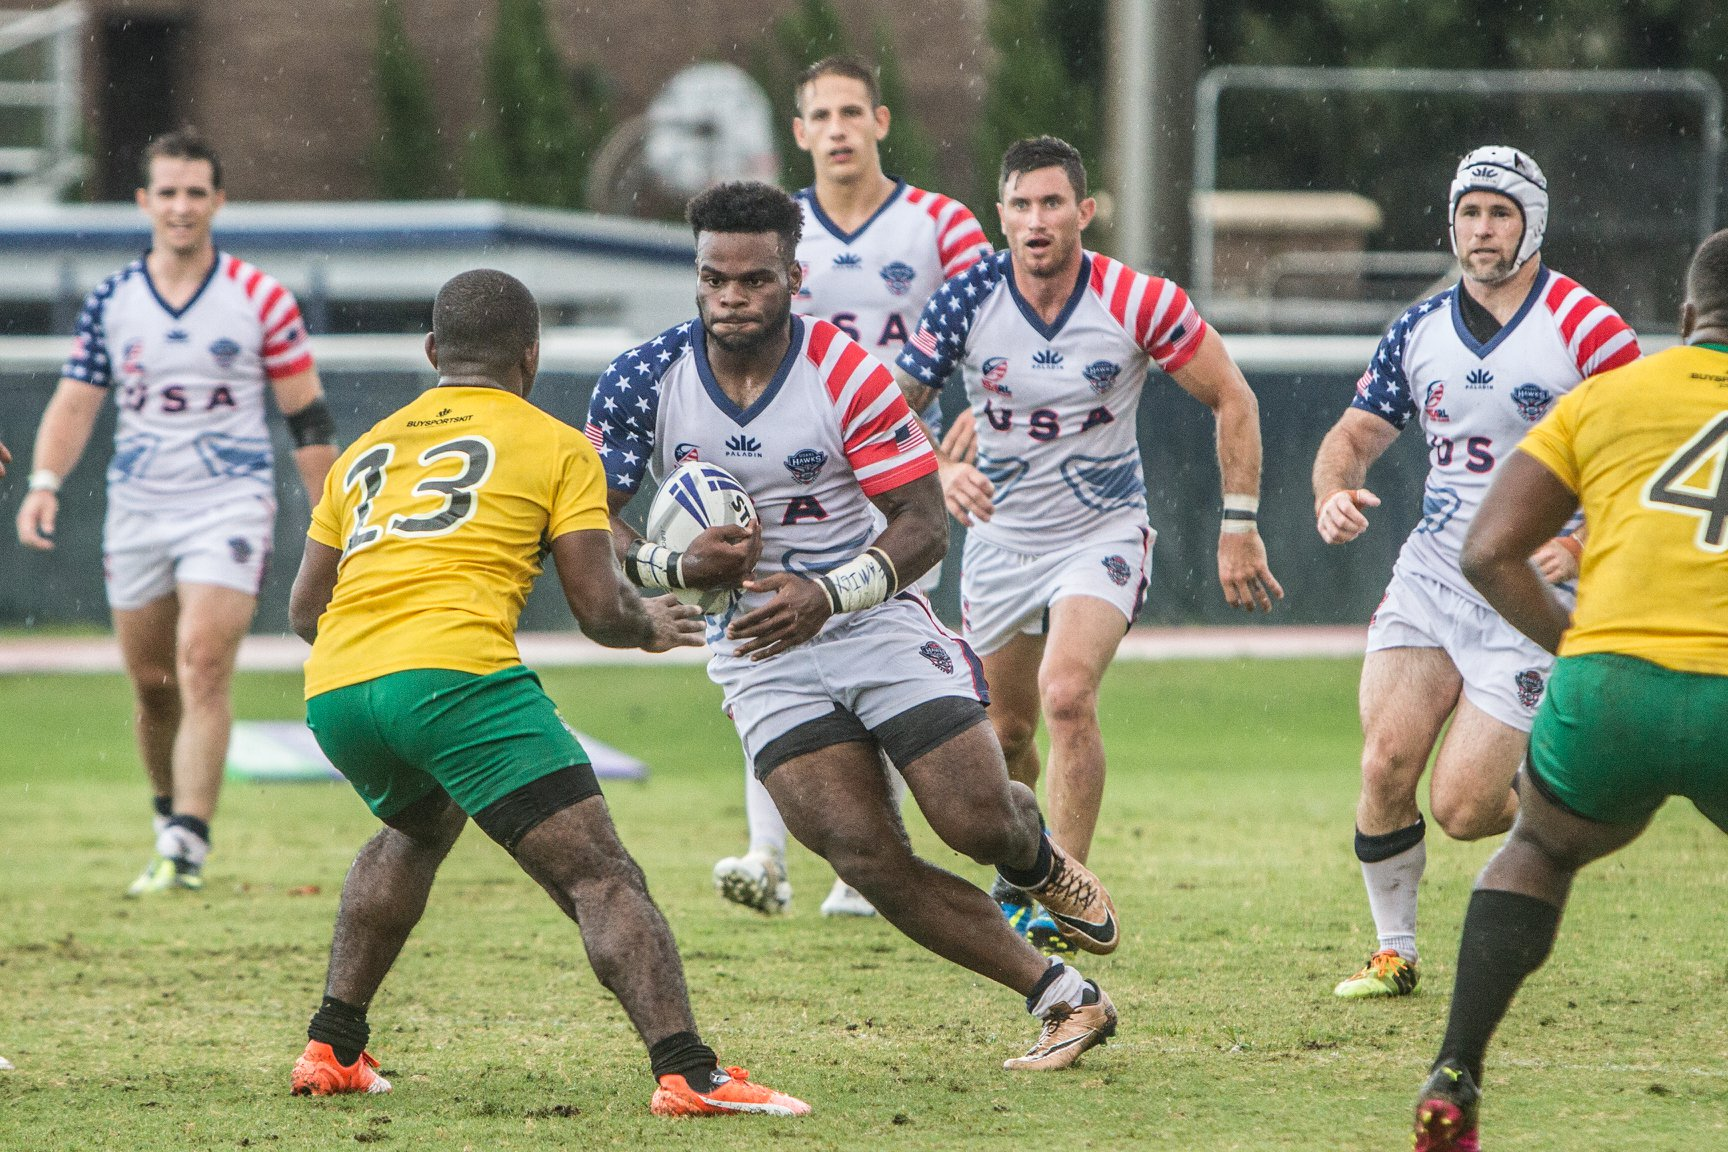 GAISF extends Rugby League's Observer Status